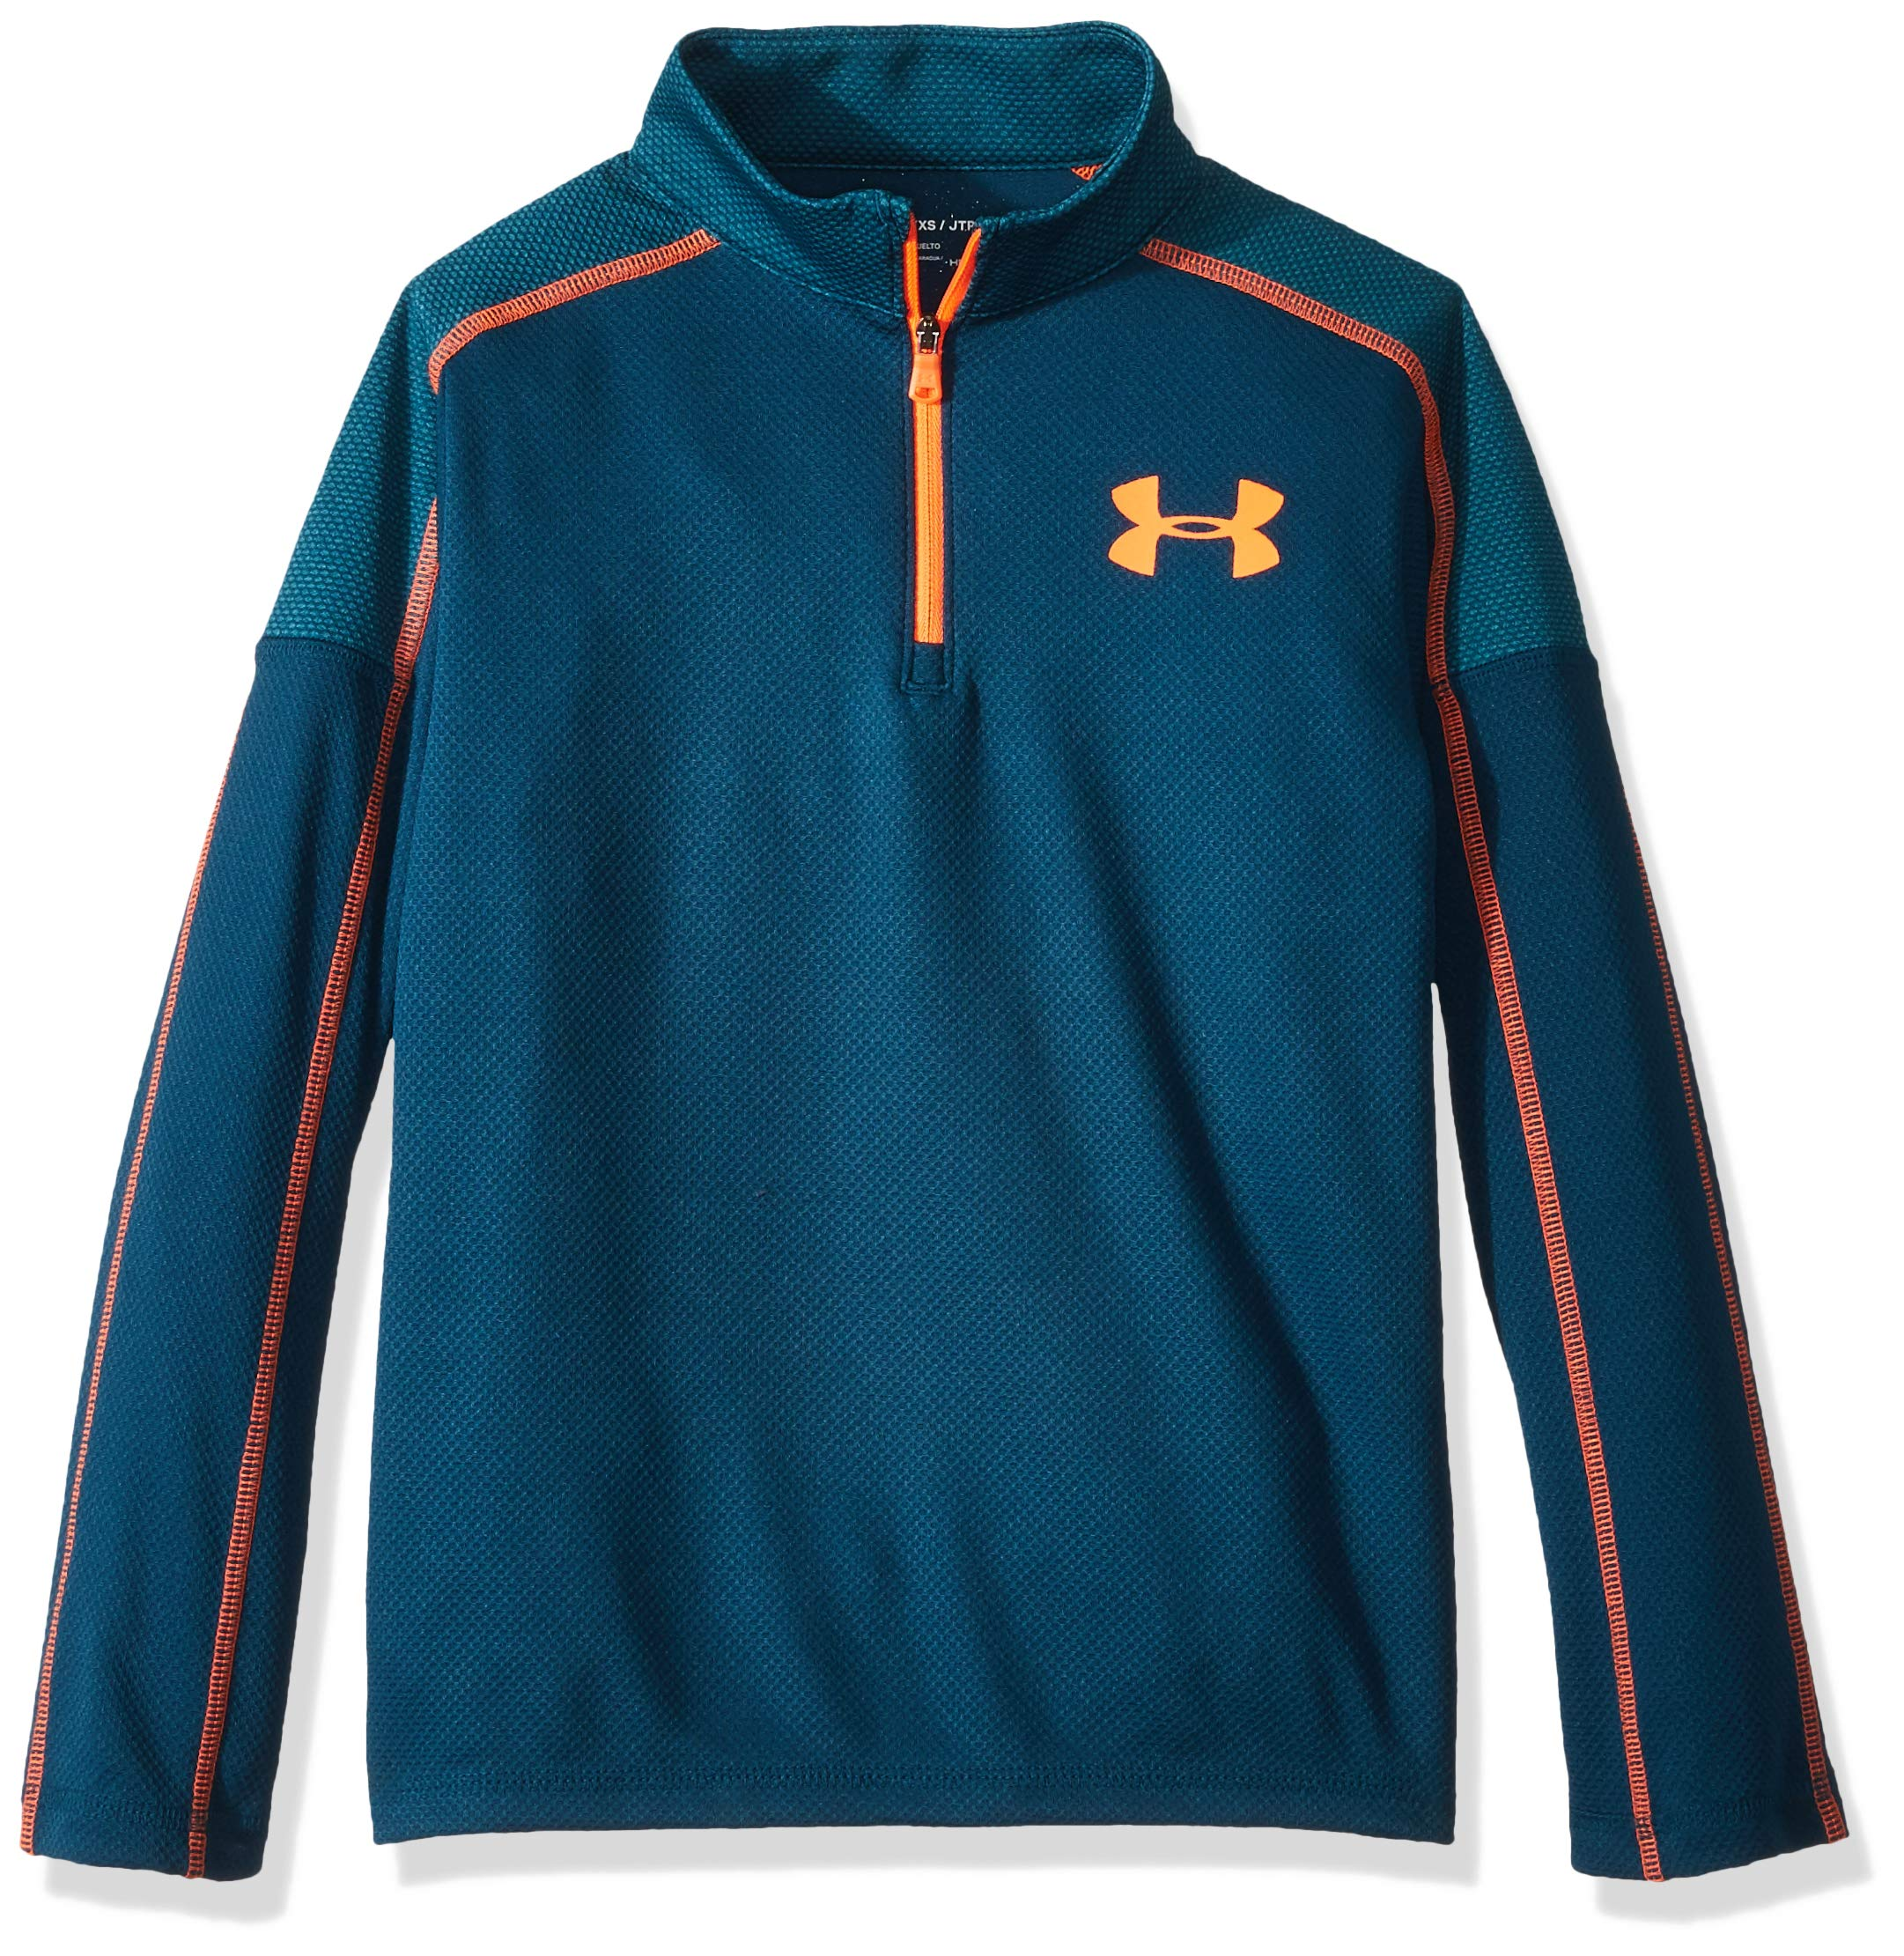 Under Armour Boys Tech 1/2 Zip, Techno Teal (489)/Magma Orange, Youth X-Large by Under Armour